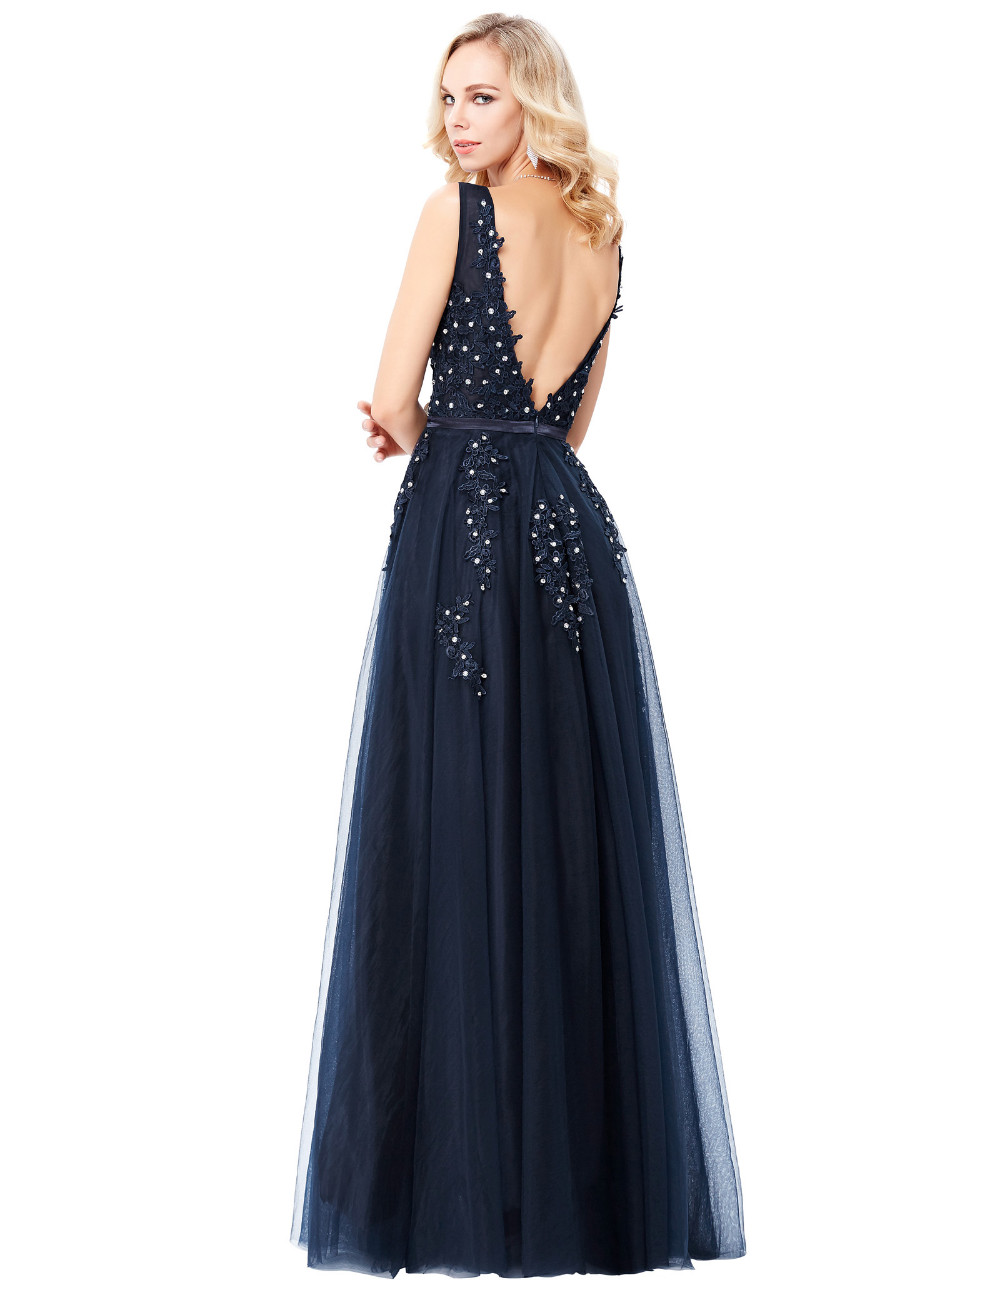 Grace Karin Tulle Appliques Celebrity Prom Dress Sexy V Back Sleeveless Long Royal Blue Robes De Soiree 2017 Longue Prom Dresses 14